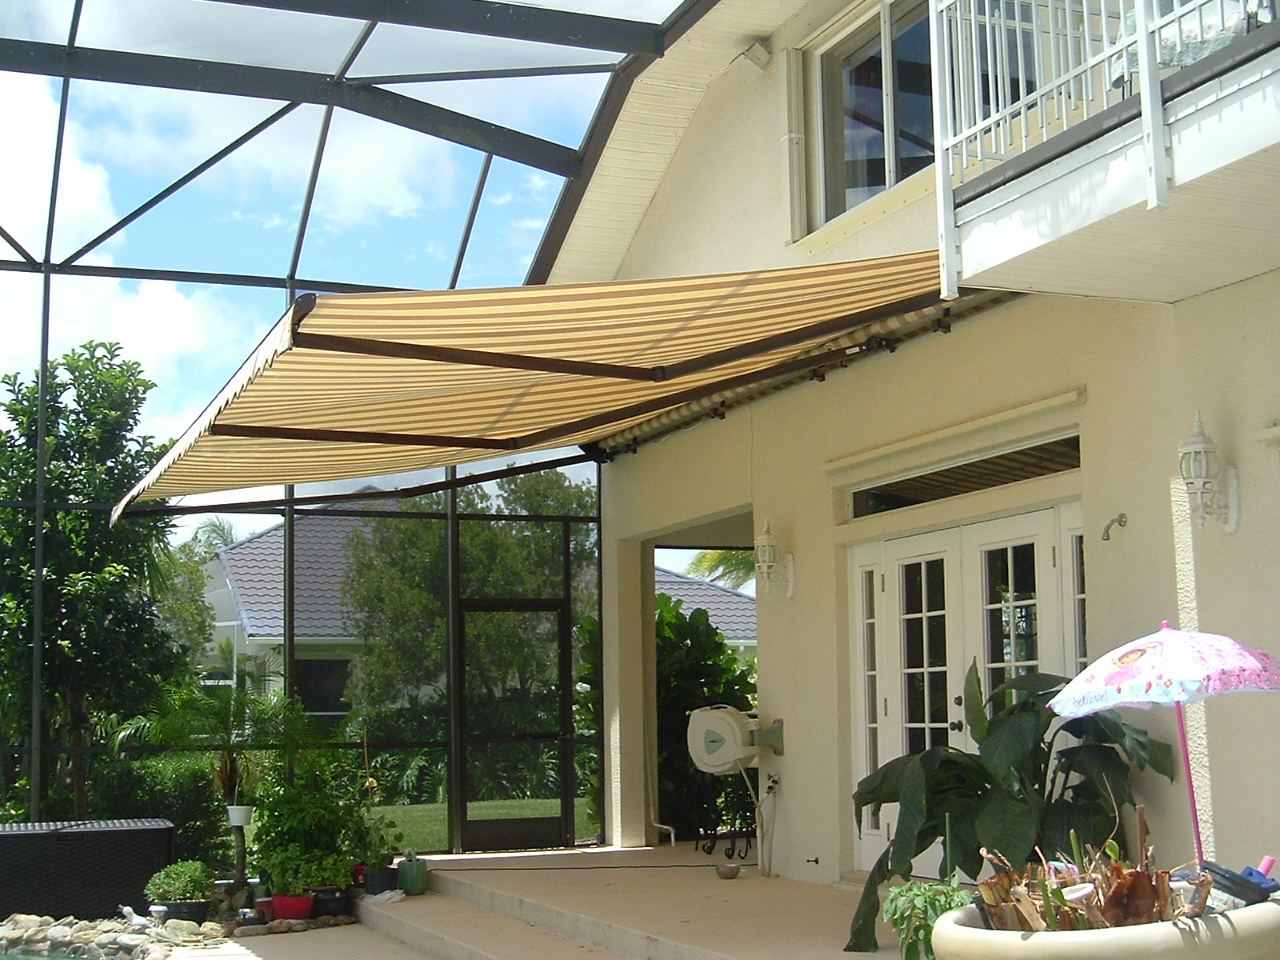 Backyard Awning Shade : Large Patios Covered by Big Shades